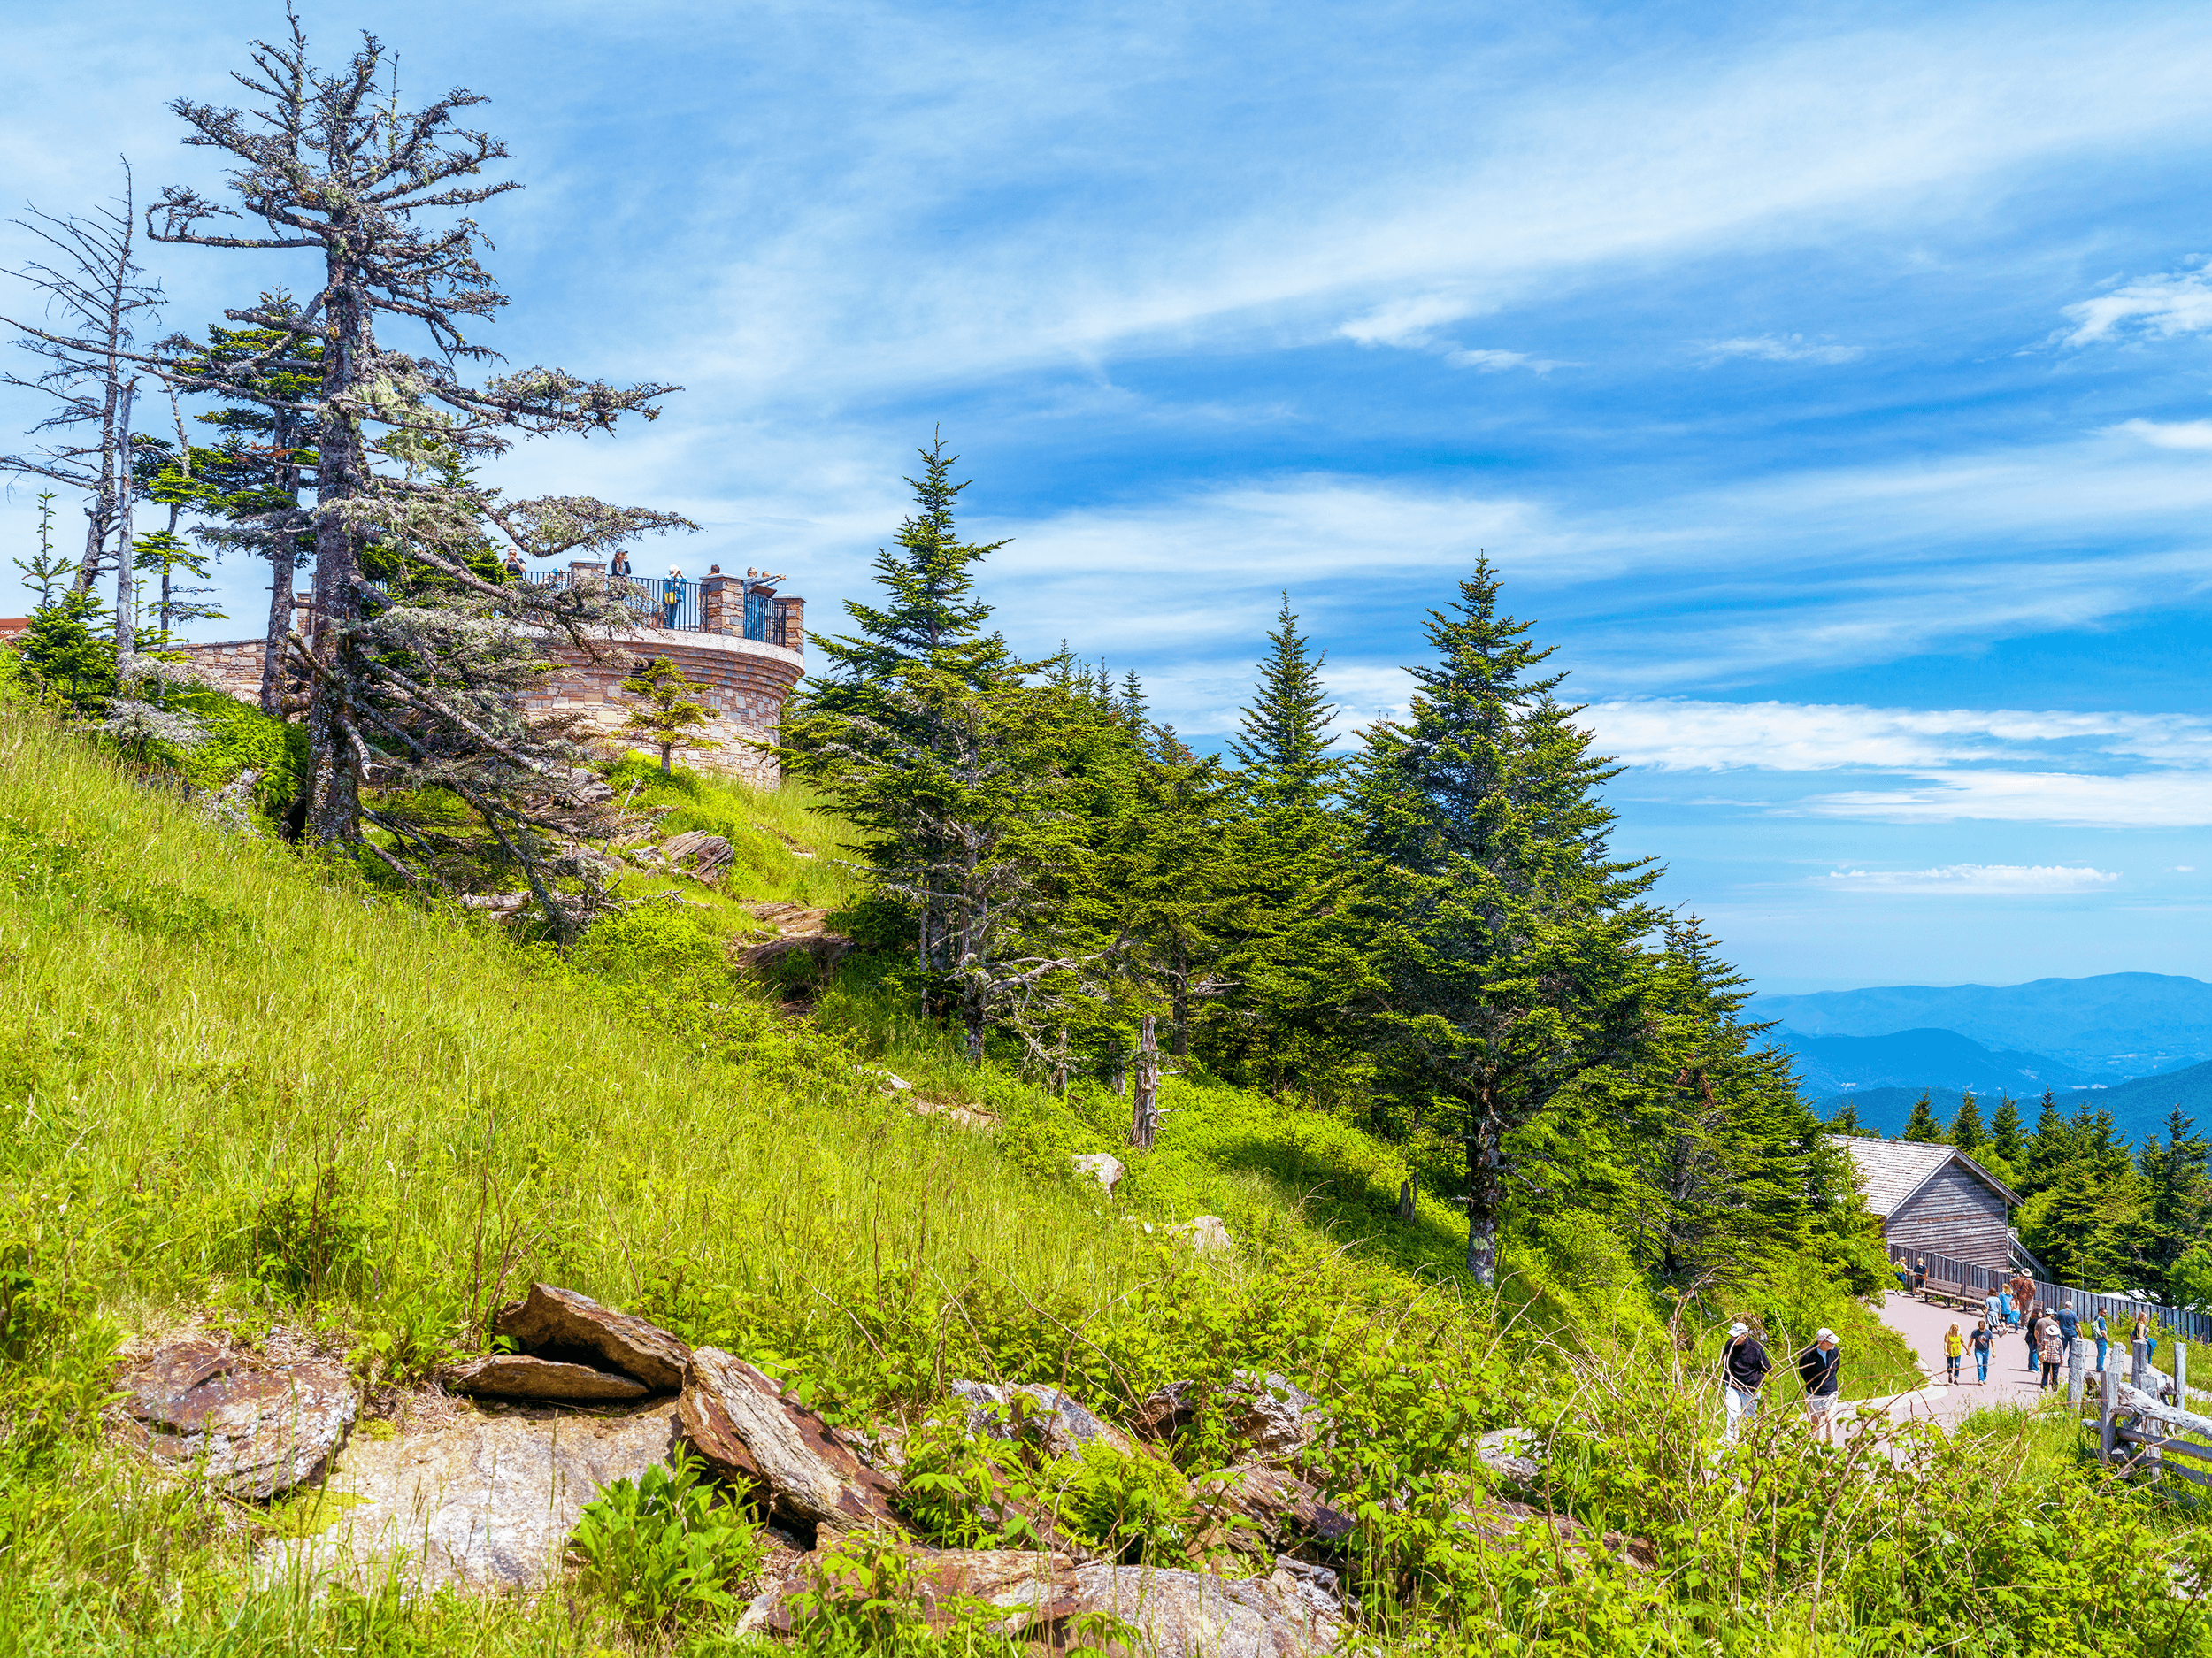 With an elevation of 6,684 feet (2,037 m),  Mount Mitchell  is the highest peak of the Appalachian Mountains and the highest mountain east of the Mississippi River. Before 1882 Mount Mitchell was known as  Black Dome , named for its rounded shape and its location in the Black Mountains.